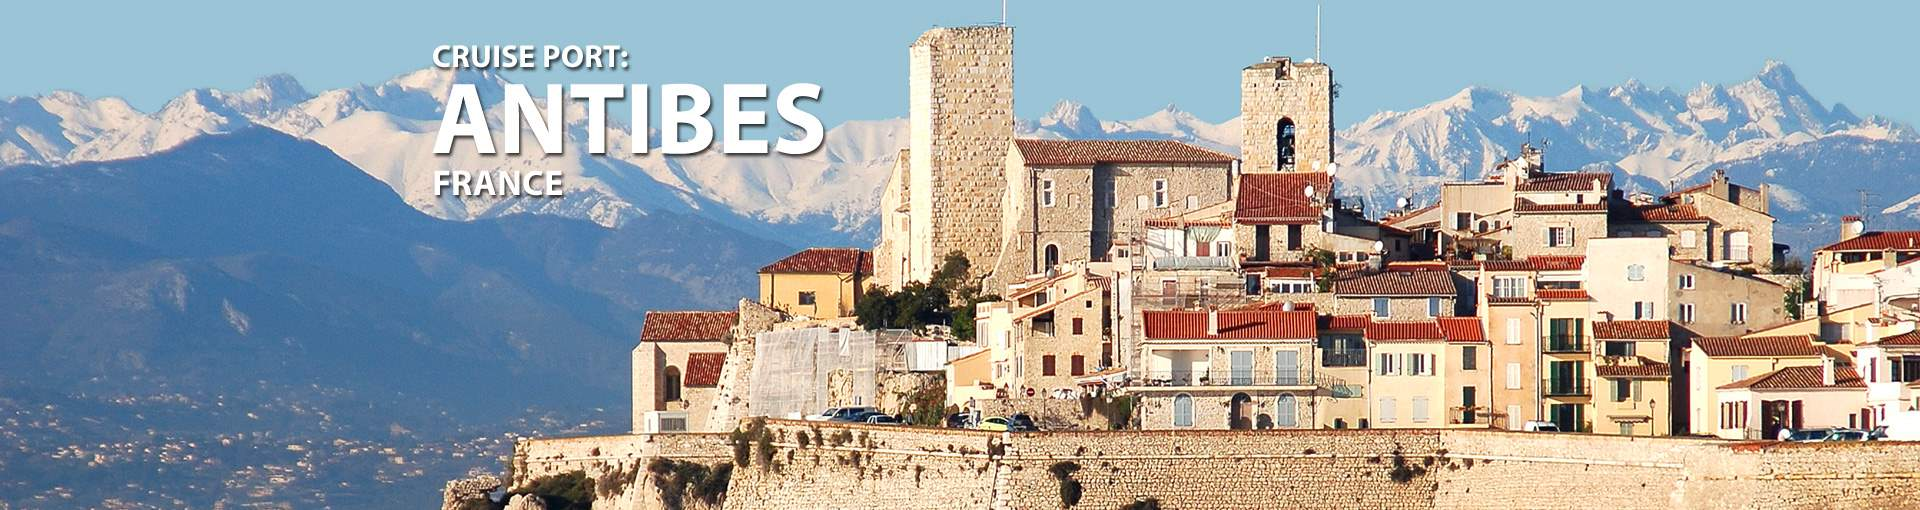 Cruises to Antibes, France